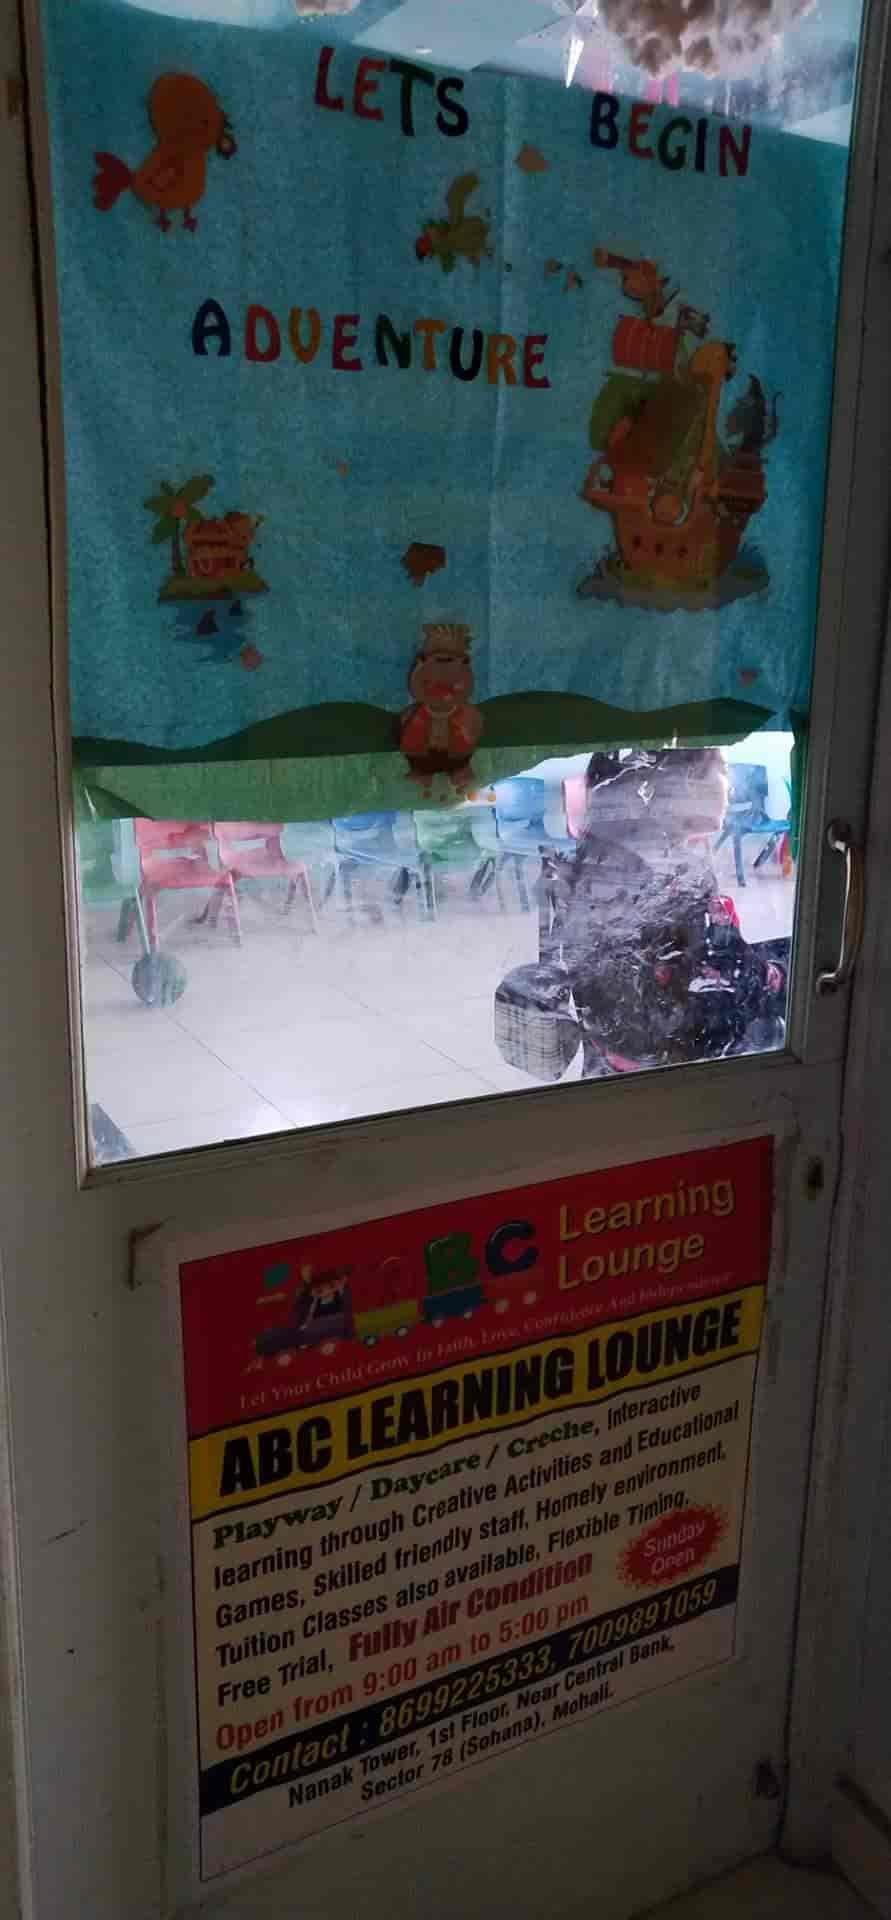 Abc Learning Lounge Photos, , Chandigarh- Pictures & Images